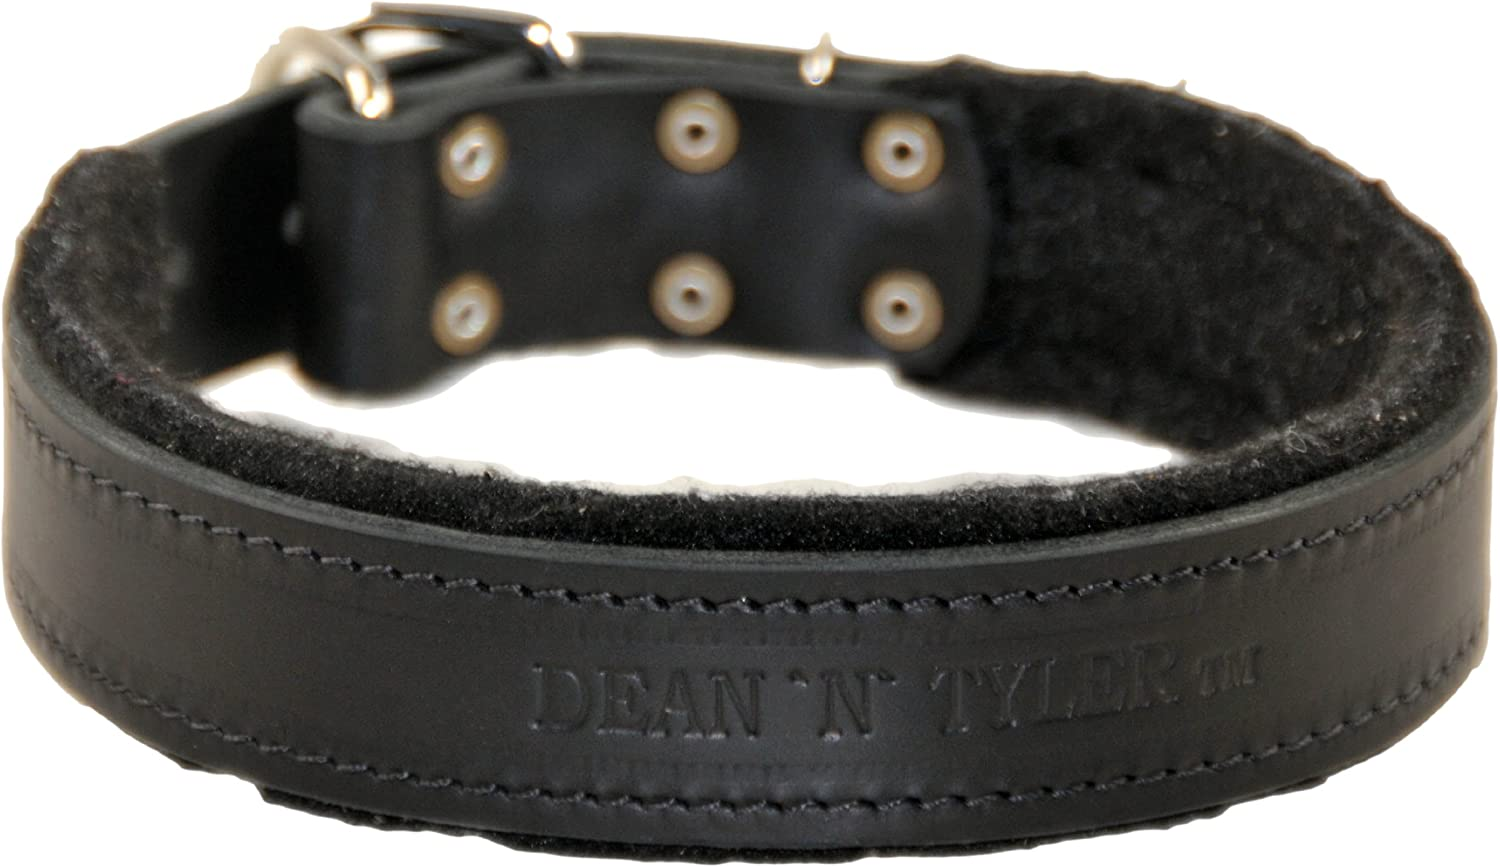 Dean and Tyler DT DELIGHT , Dog Collar with Felt Padding and Strong Hardware  Black  Size 36Inch by 11 2Inch  Fits Neck 34Inch to 38Inch